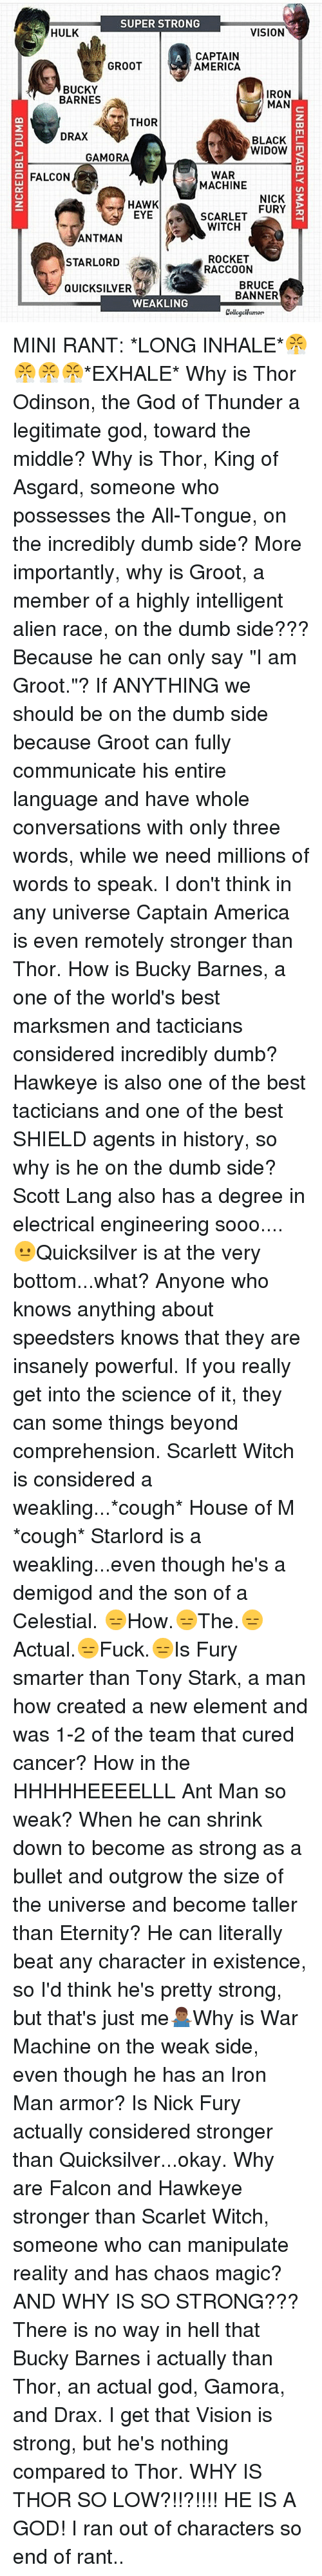 """electrical engineering: SUPER STRONG  HULK  VISION  CAPTAIN  GROOT  AMERICA  BUCKY  IRON  BARNES  MAN  THOR  DRAX  BLACK  WIDOW  m  GAMORA  WAR  FALCON  MACHINE  NICK  3  HAWK  FURY  EYE  SCARLET  WITCH  ANTMAN  ROCKET  STARLORD  RACCOON  BRUCE  QUICKSILVER  BANNER  WEAKLING  CollegeHumor MINI RANT: *LONG INHALE*😤😤😤😤*EXHALE* Why is Thor Odinson, the God of Thunder a legitimate god, toward the middle? Why is Thor, King of Asgard, someone who possesses the All-Tongue, on the incredibly dumb side? More importantly, why is Groot, a member of a highly intelligent alien race, on the dumb side??? Because he can only say """"I am Groot.""""? If ANYTHING we should be on the dumb side because Groot can fully communicate his entire language and have whole conversations with only three words, while we need millions of words to speak. I don't think in any universe Captain America is even remotely stronger than Thor. How is Bucky Barnes, a one of the world's best marksmen and tacticians considered incredibly dumb? Hawkeye is also one of the best tacticians and one of the best SHIELD agents in history, so why is he on the dumb side? Scott Lang also has a degree in electrical engineering sooo.... 😐Quicksilver is at the very bottom...what? Anyone who knows anything about speedsters knows that they are insanely powerful. If you really get into the science of it, they can some things beyond comprehension. Scarlett Witch is considered a weakling...*cough* House of M *cough* Starlord is a weakling...even though he's a demigod and the son of a Celestial. 😑How.😑The.😑Actual.😑Fuck.😑Is Fury smarter than Tony Stark, a man how created a new element and was 1-2 of the team that cured cancer? How in the HHHHHEEEELLL Ant Man so weak? When he can shrink down to become as strong as a bullet and outgrow the size of the universe and become taller than Eternity? He can literally beat any character in existence, so I'd think he's pretty strong, but that's just me🤷🏾♂️Why is War Machine on the weak side, even """